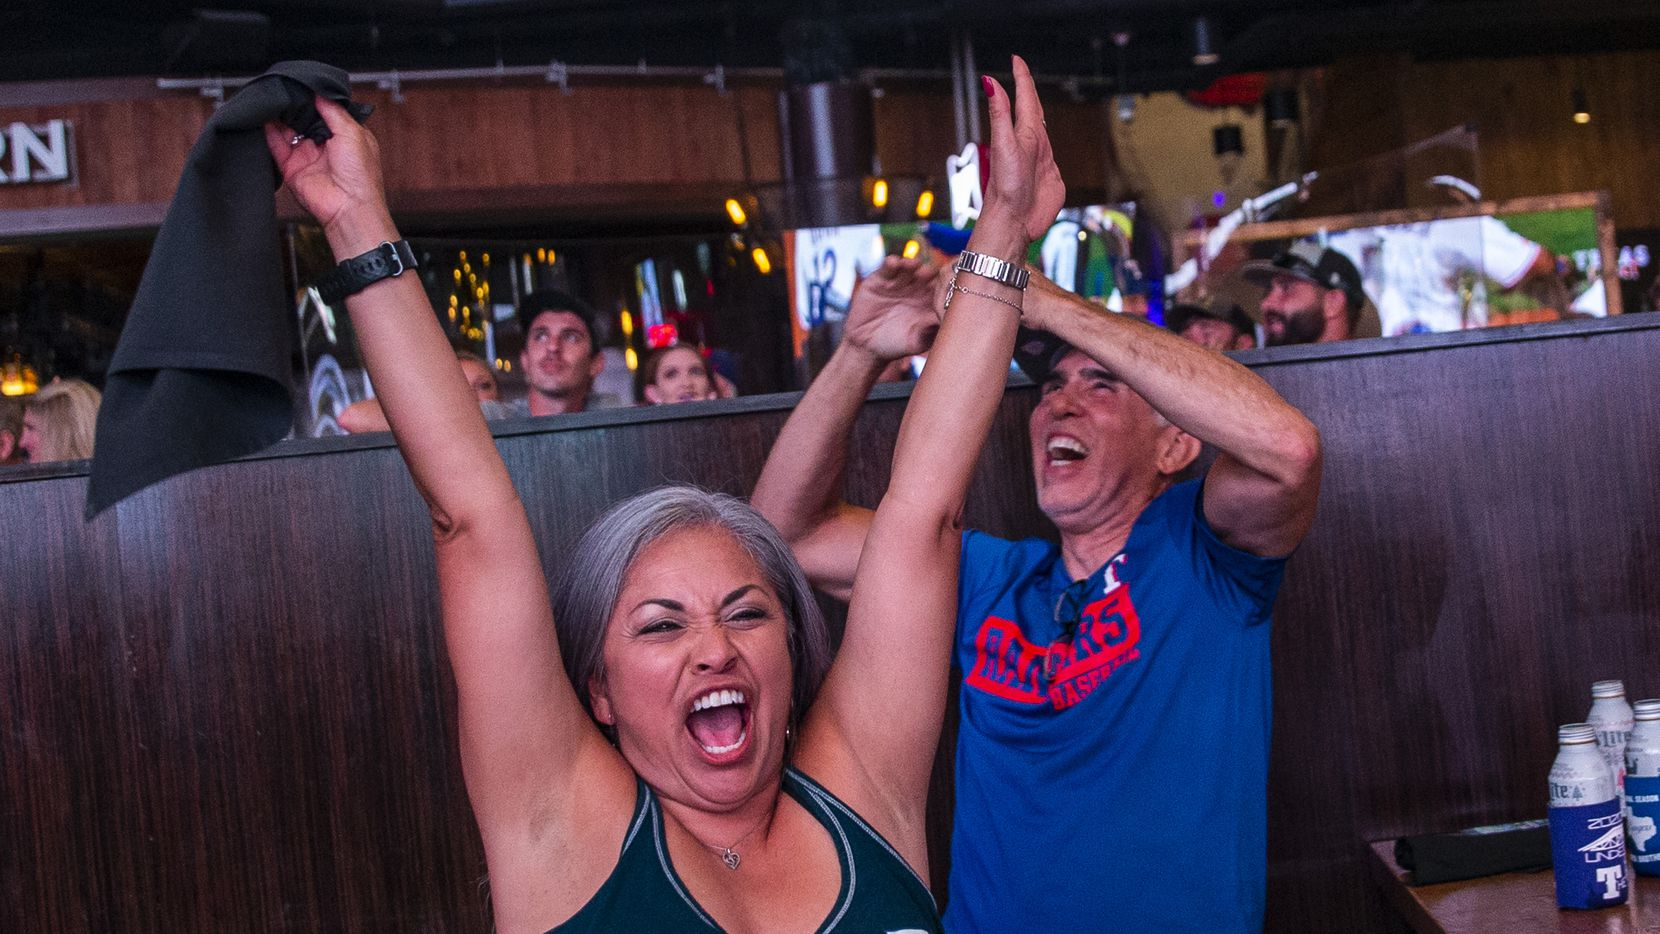 Claudia Borunda (left), from California, cheers with fans as the Texas Rangers win their opening day game of their season at Texas Live! in Arlington, Texas, on Friday, July 24, 2020. The Rangers played the Colorado Rockies at the new Globe Life Field stadium, but fans had to watch on televised screens outside due to the ongoing pandemic.